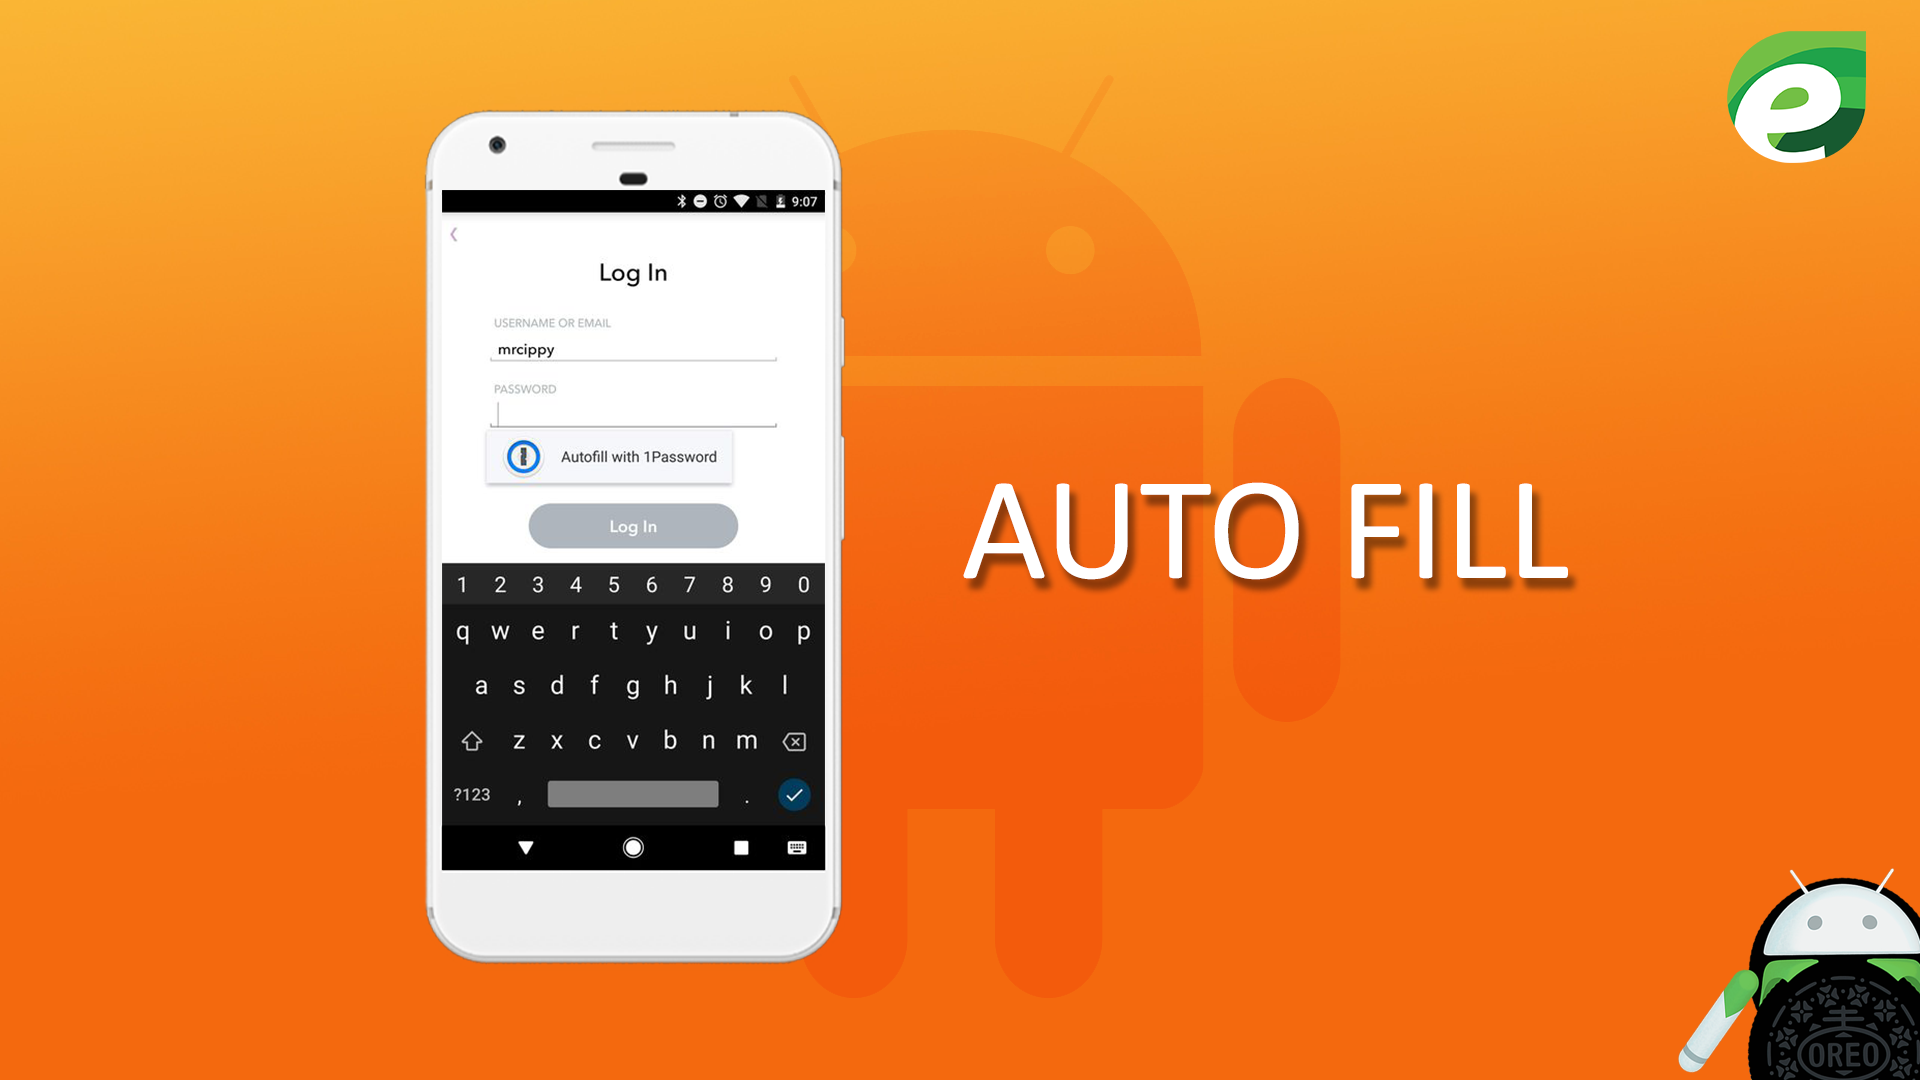 Android oreo- Auto-fill